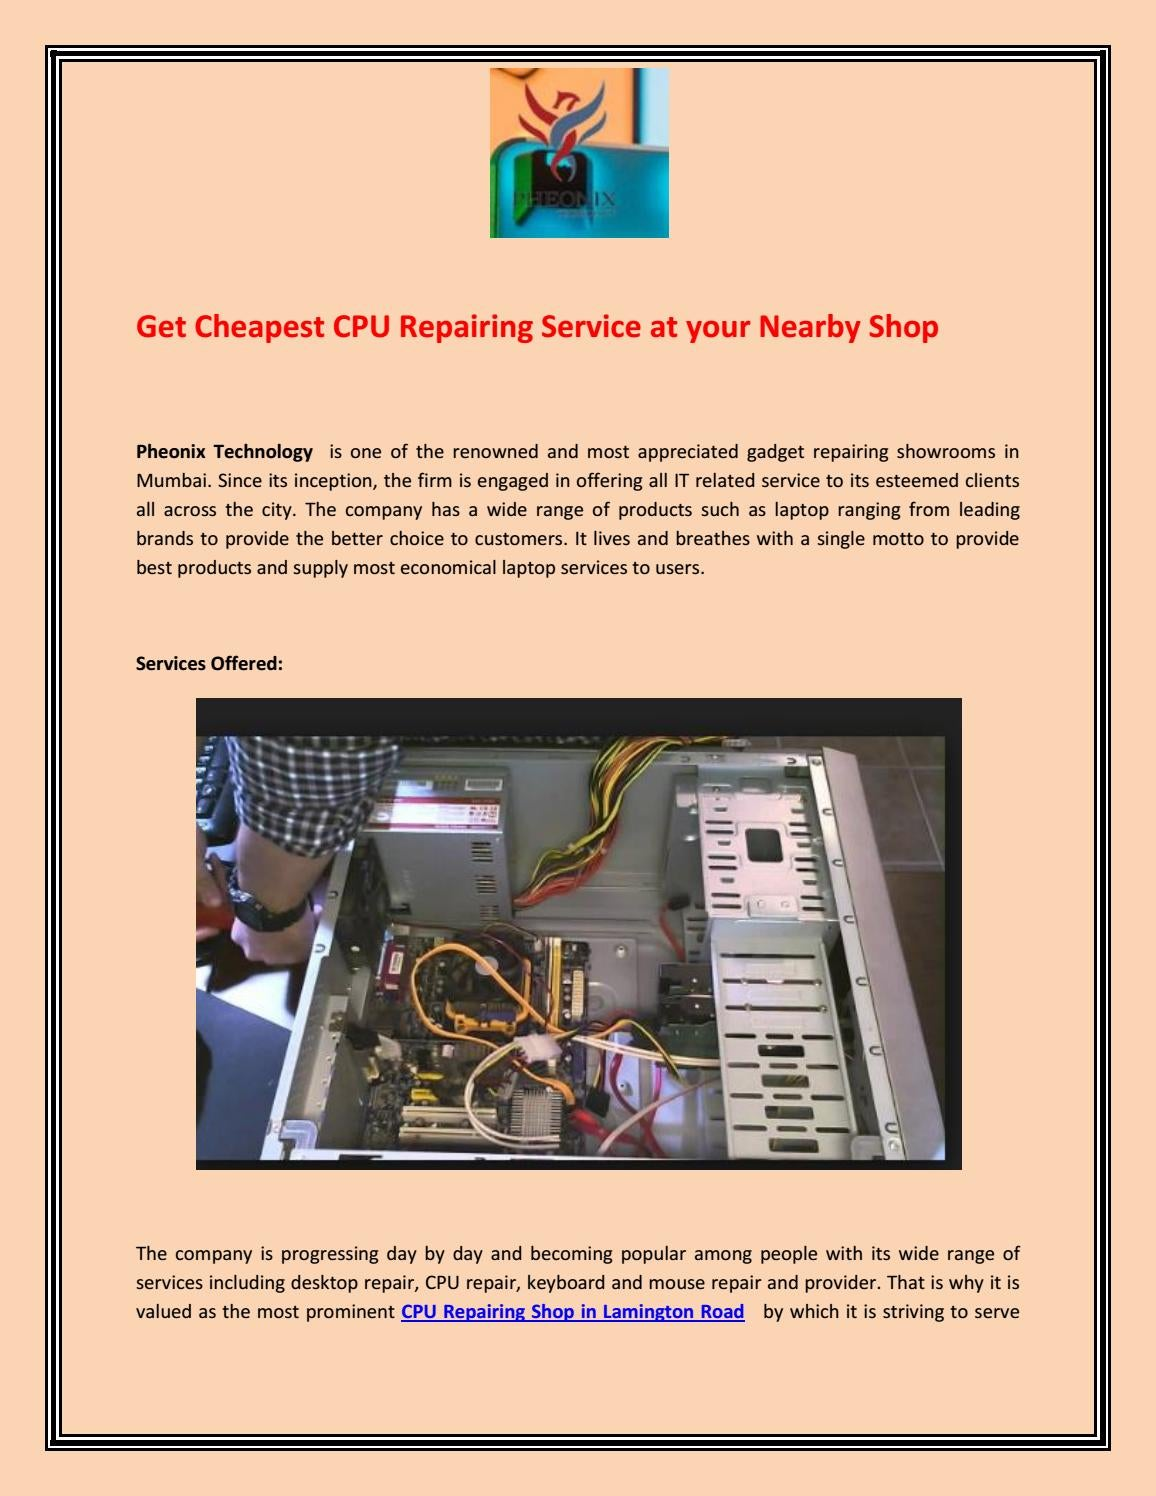 Get Cheapest Cpu Repairing Service At Your Nearby Shop By Pheonixtechnology0 Issuu